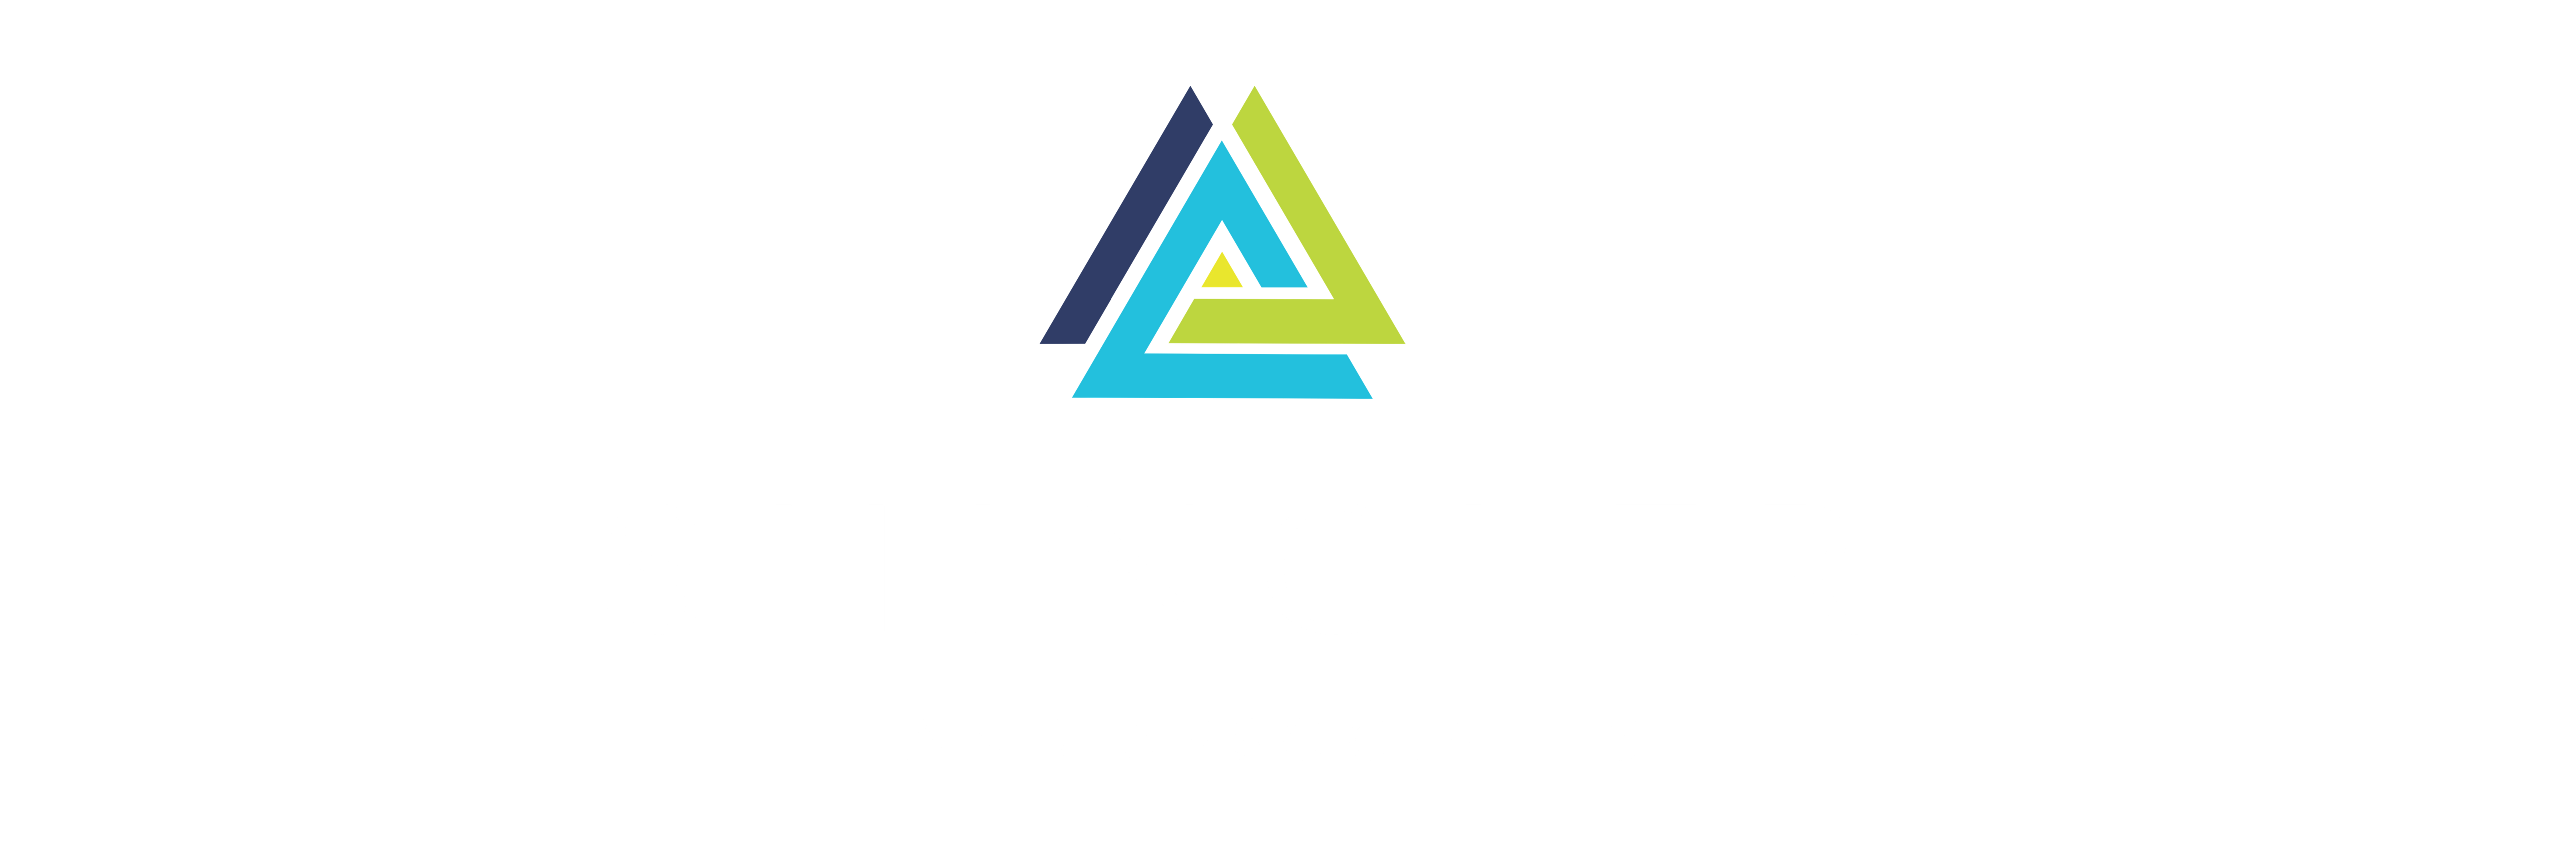 Shingler and Associates - Accounting and Tax Specialists